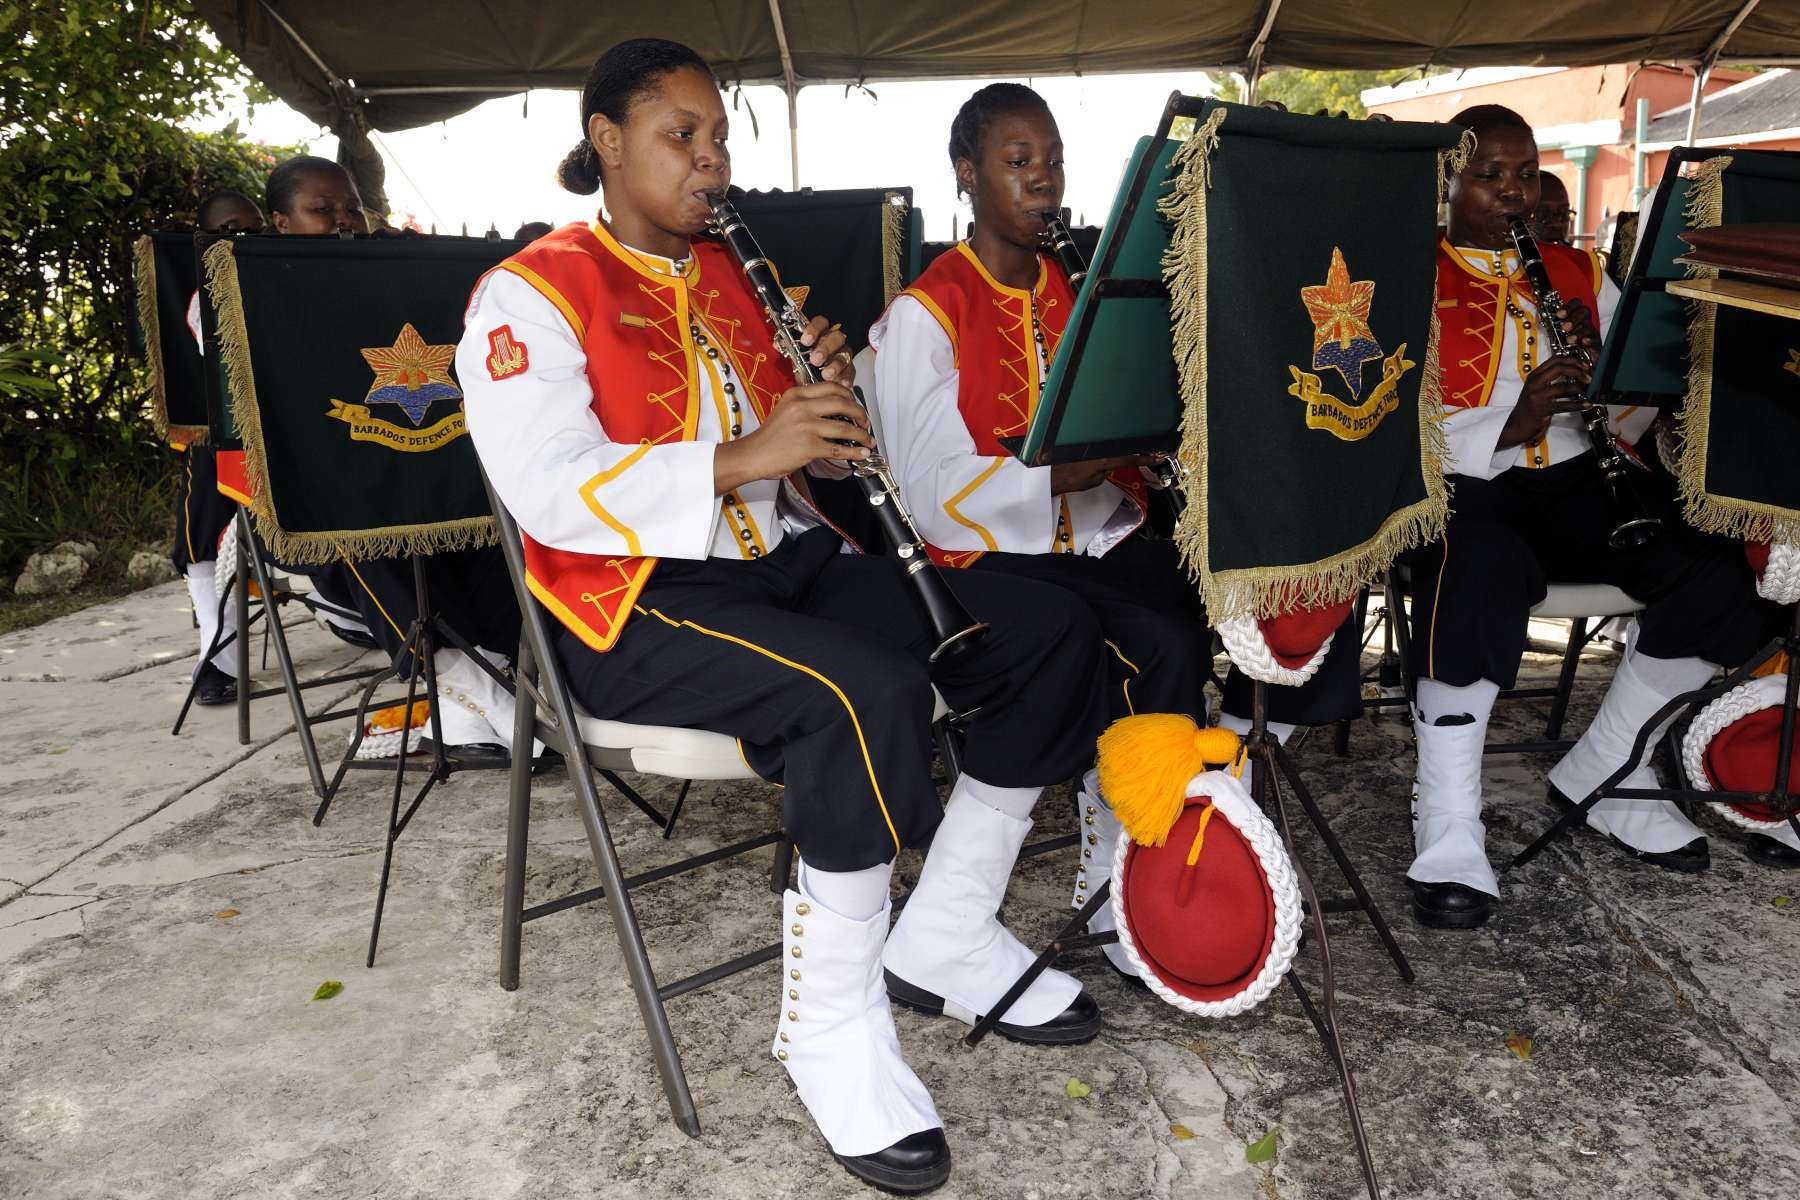 Their Excellencies and the Canadian delegation visited the Historic Garrison, a UNESCO World Heritage Site, and met with members of the Barbados Defence Force, as well as with government and private sector officials.